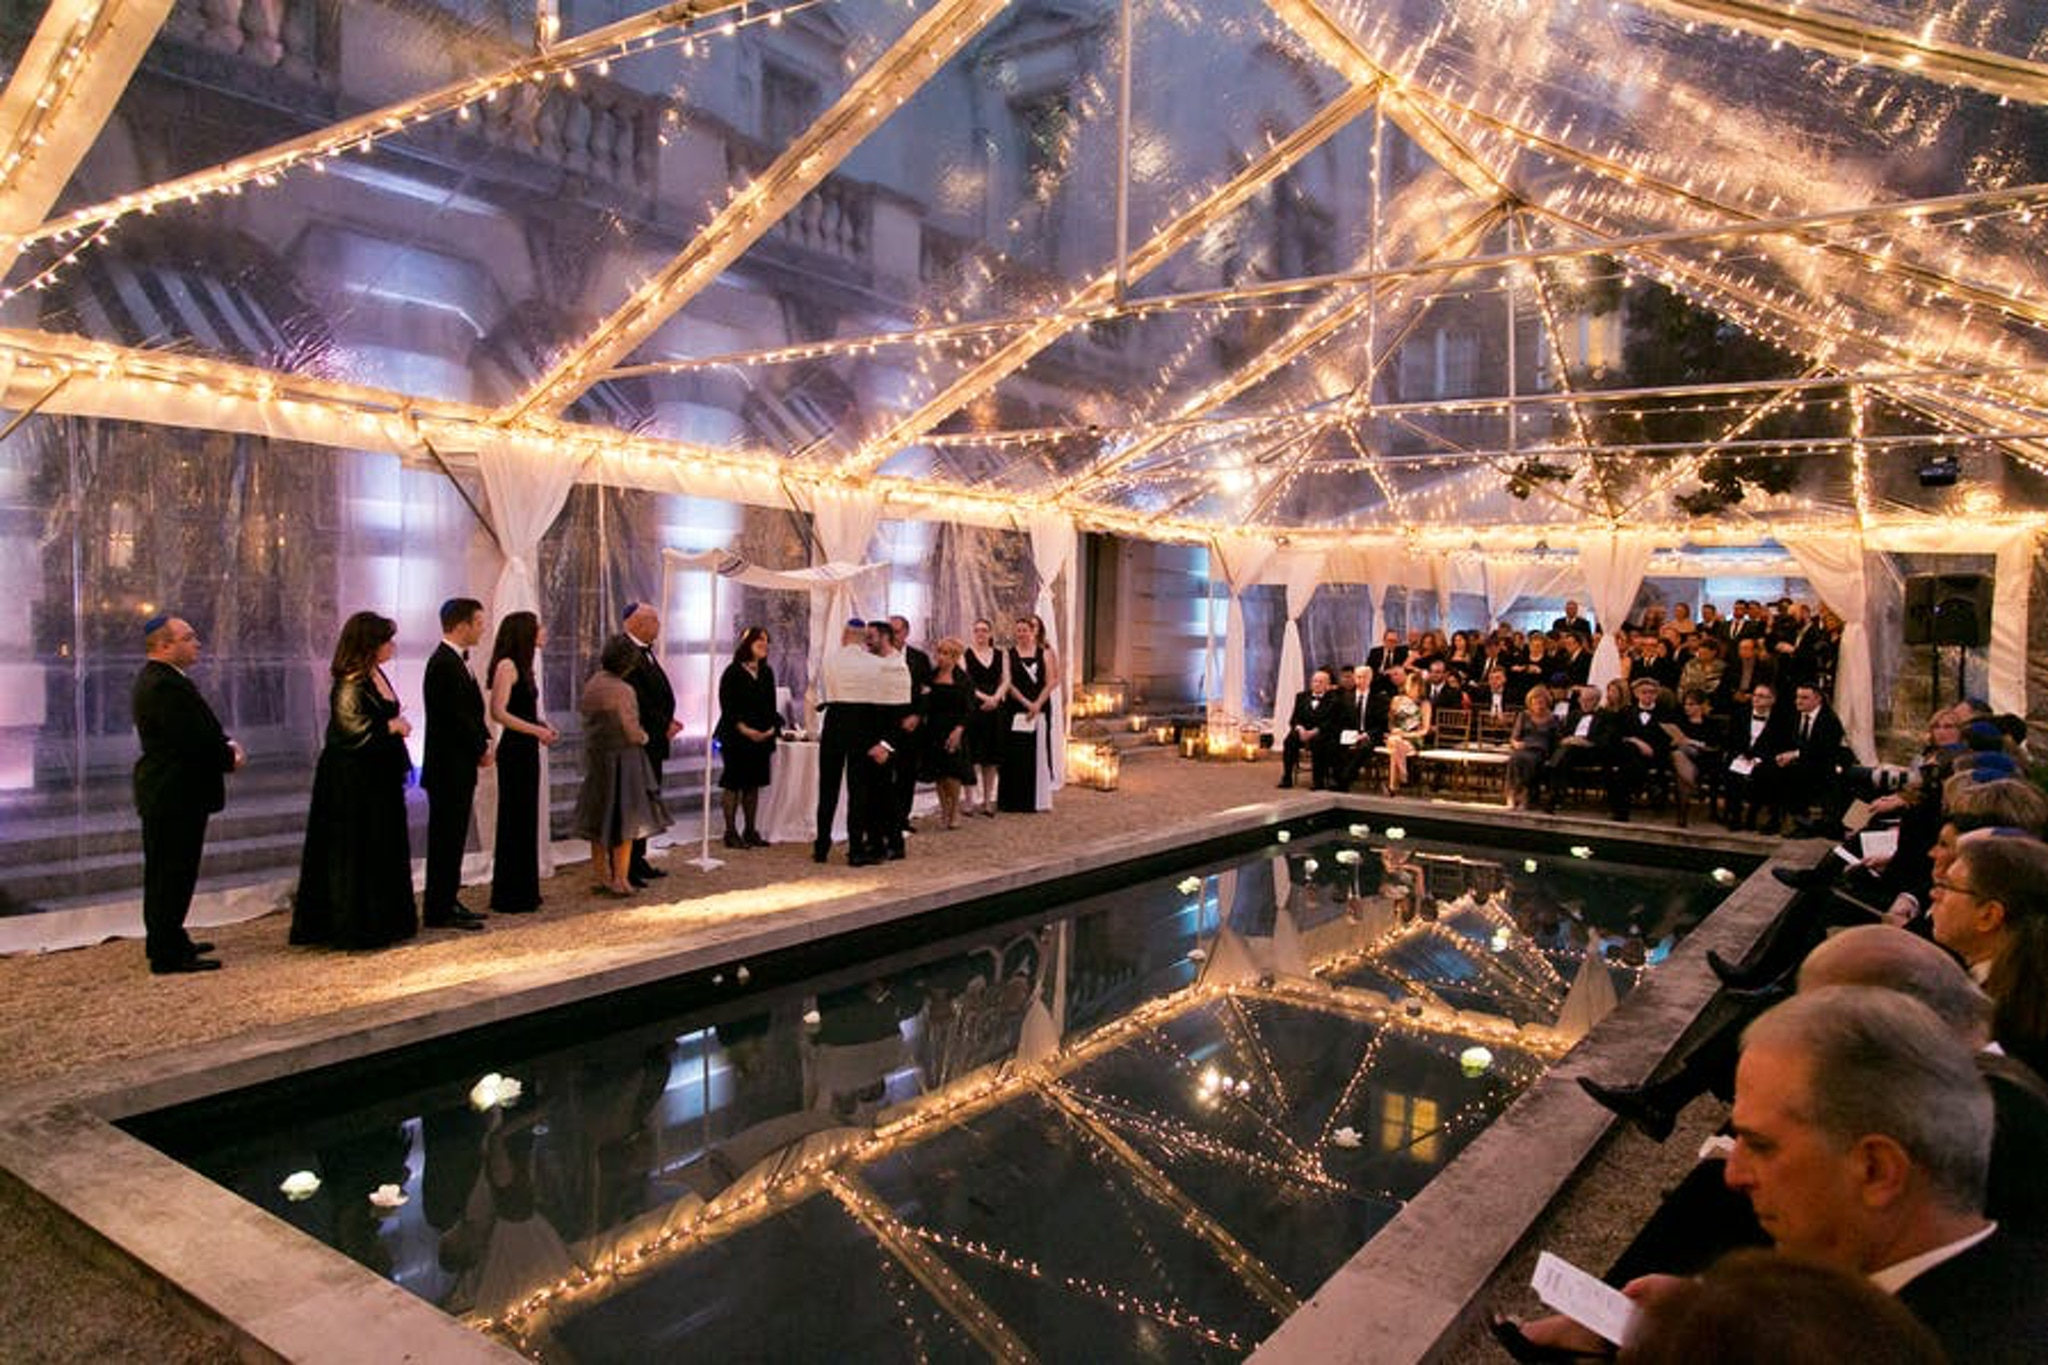 a clear tent covers the beautiful nighttime fountain at the society of cincinnati in washington, d.c.